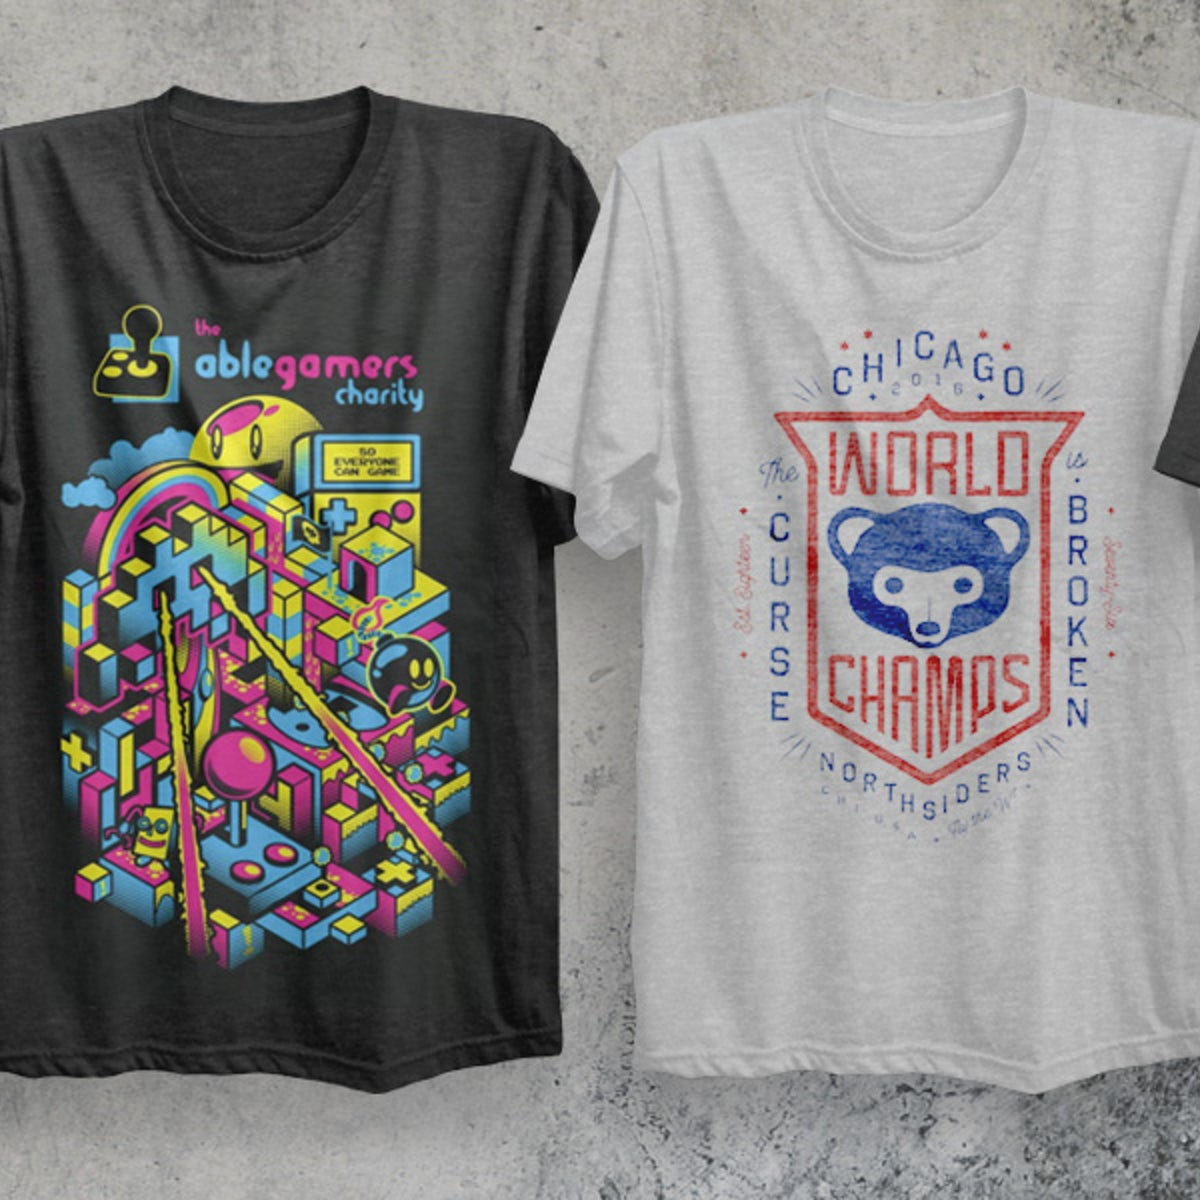 50 t-shirt design ideas that won't wear out - 99designs